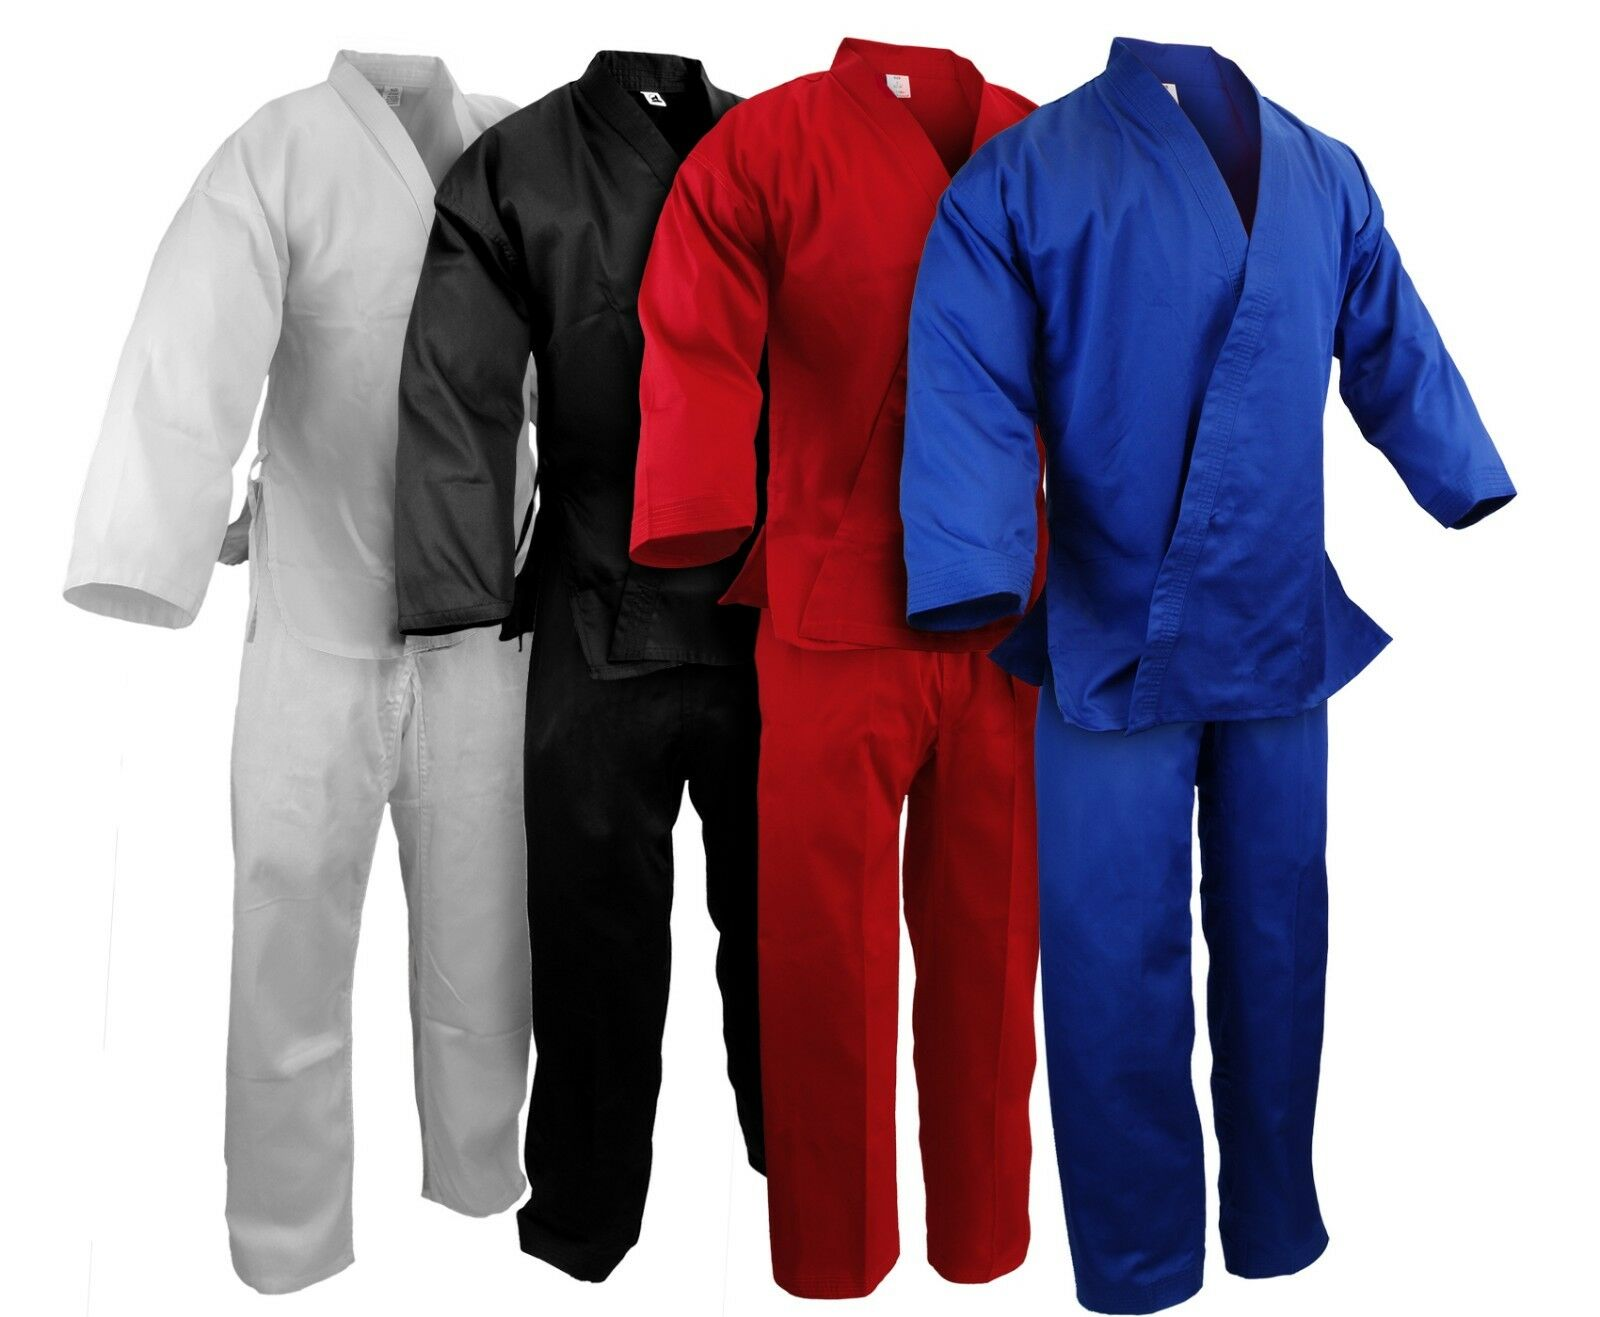 New Martial Arts Karate 7.5 oz Gi Uniform w White Belt WH BK RED blueeE,